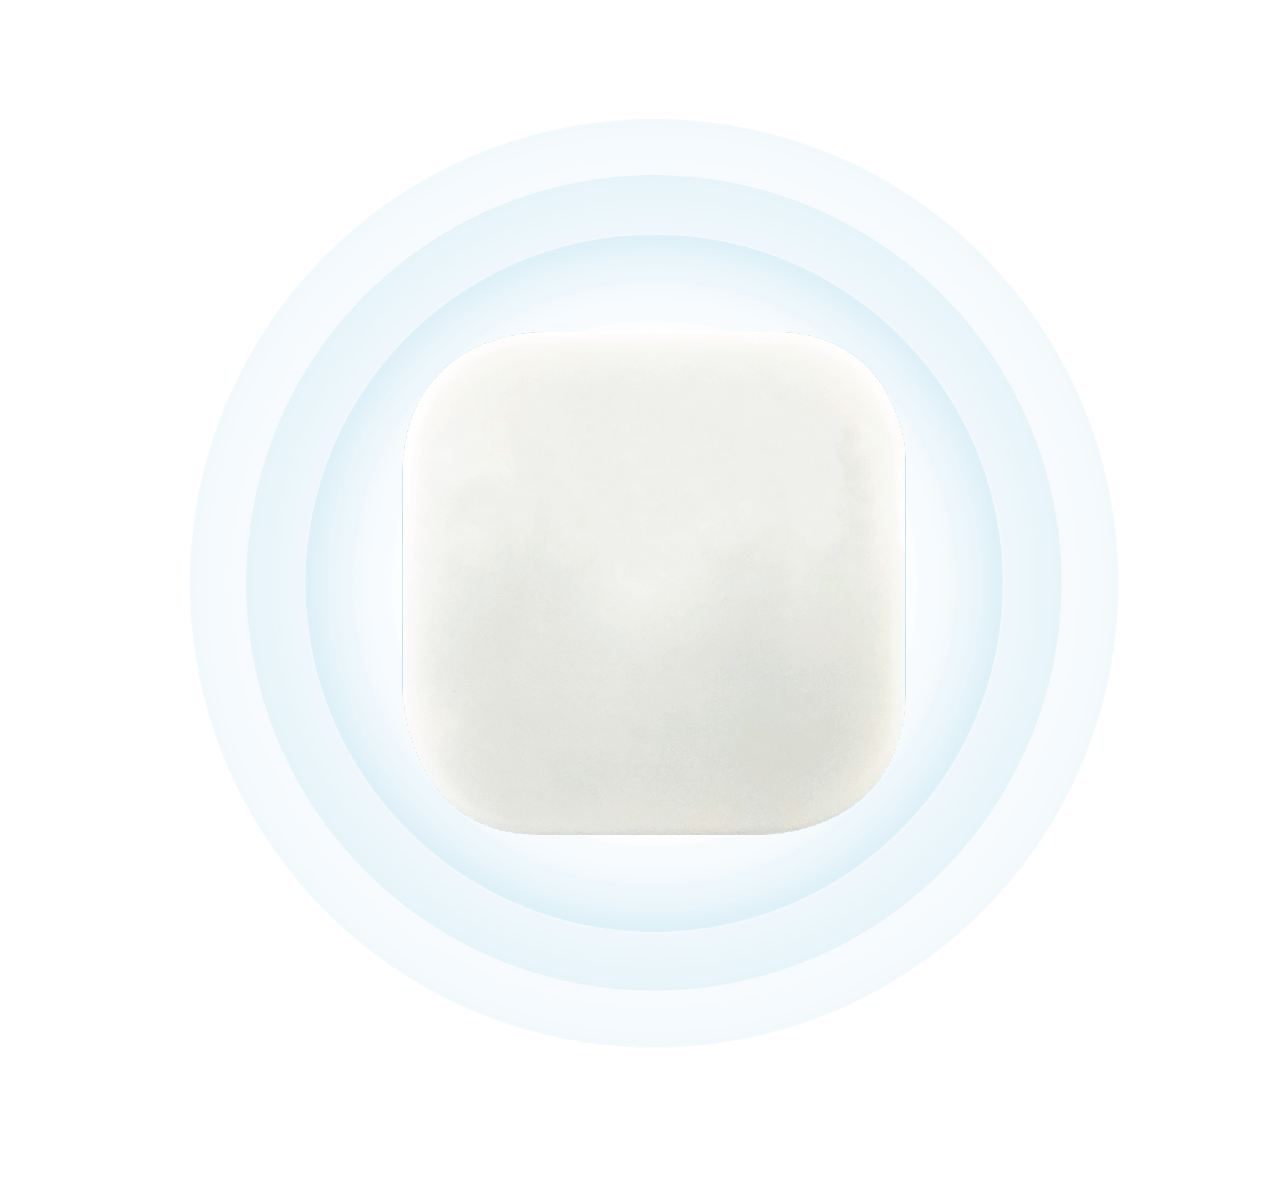 Trisensor - a security sensor that captures information from movement, light, and temperature